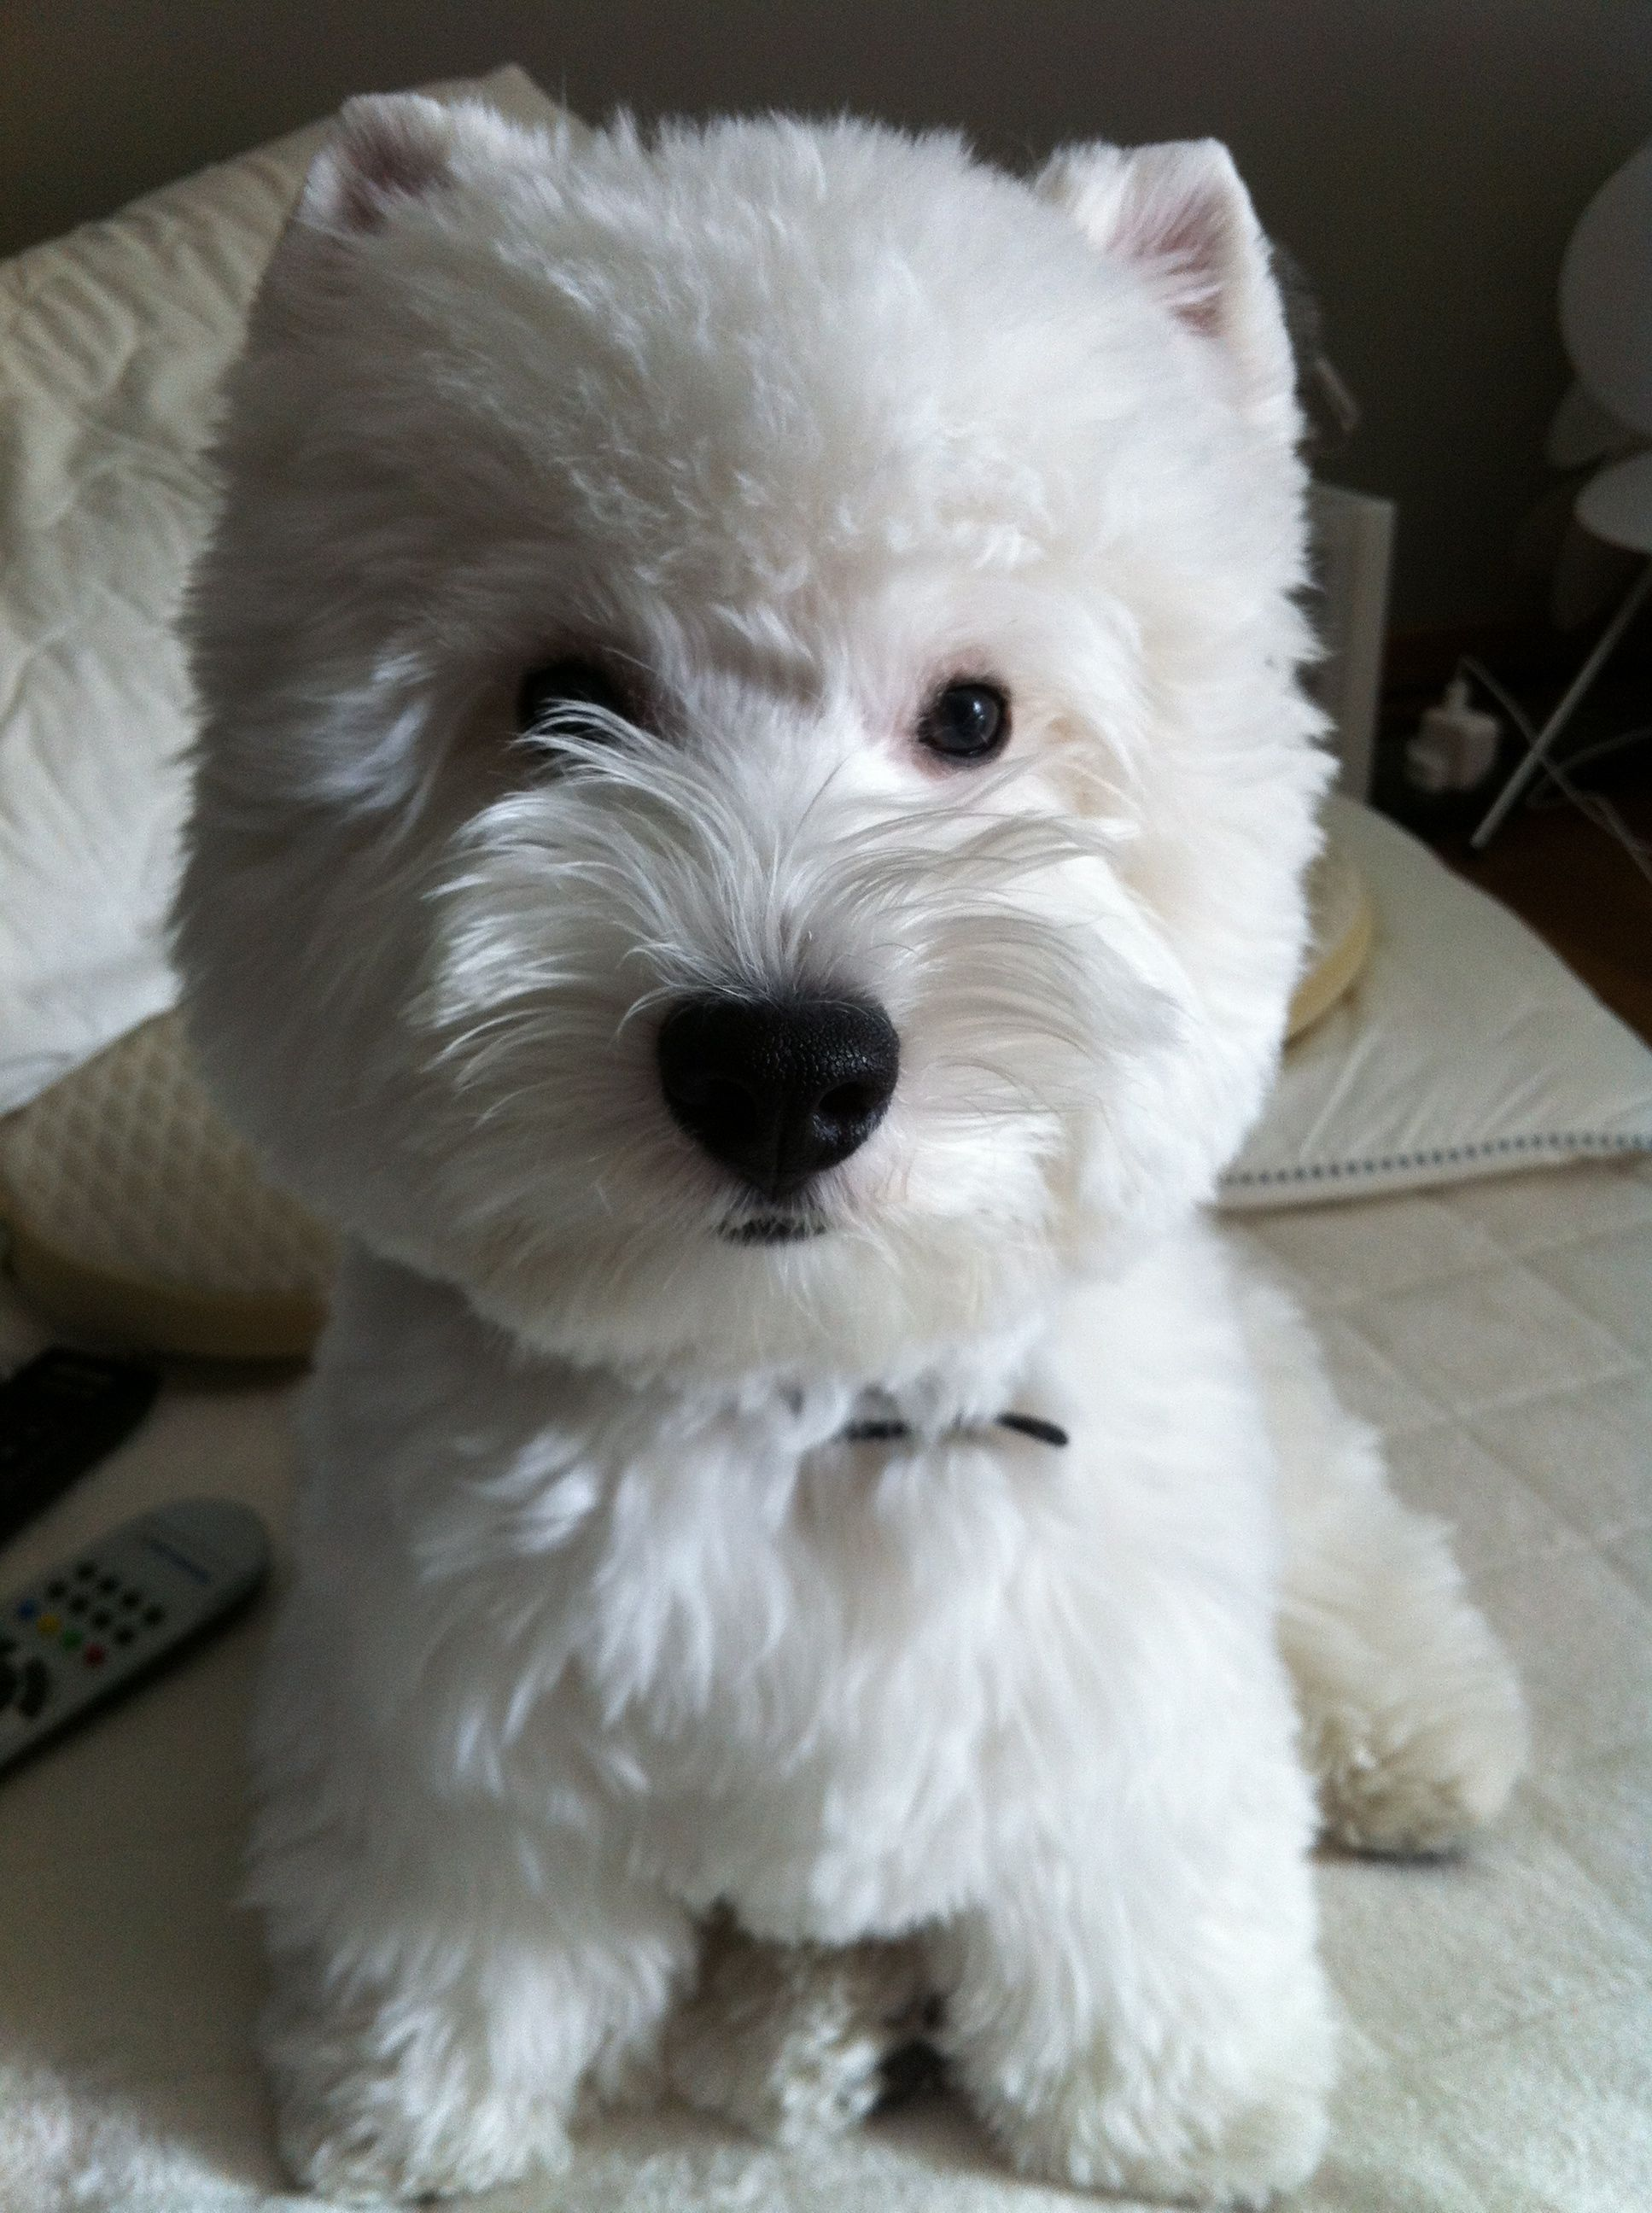 West Highland Terrier To View More Tips About Pet Dogs Visit The Image Link Westie Dogs Westie Puppies Cute Dogs